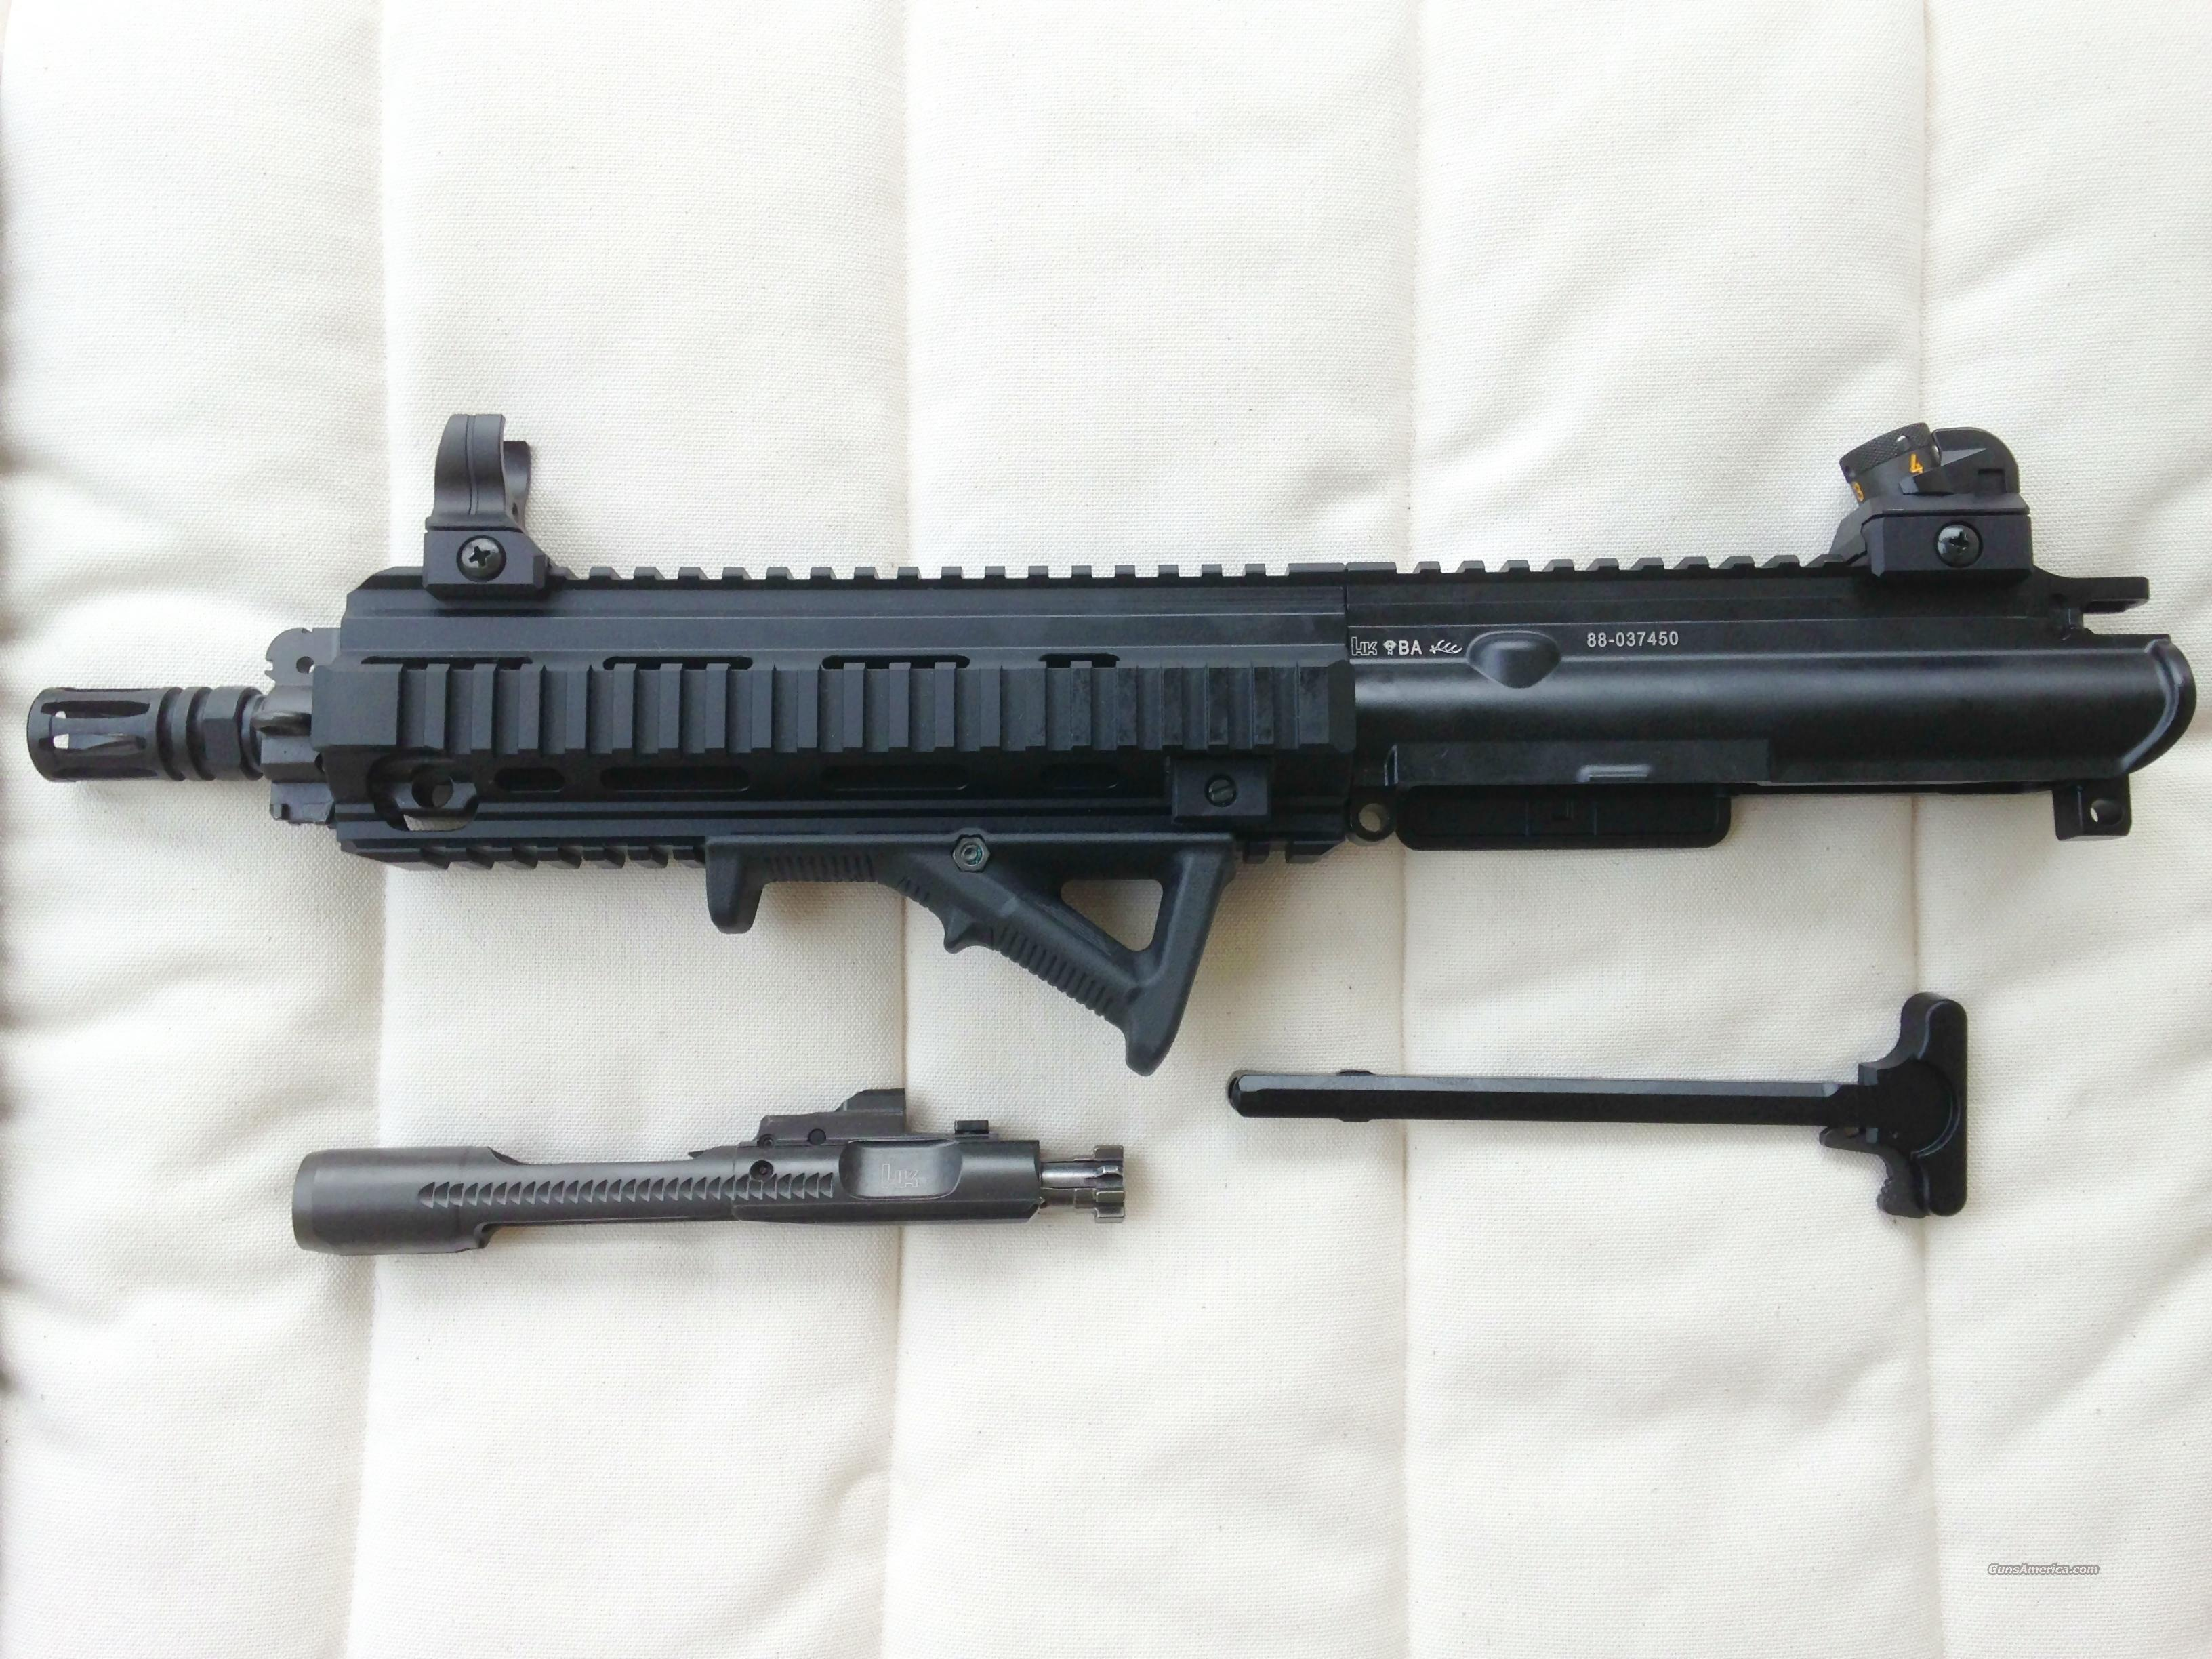 Try These Hk416 Upper Parts Kit {Mahindra Racing}